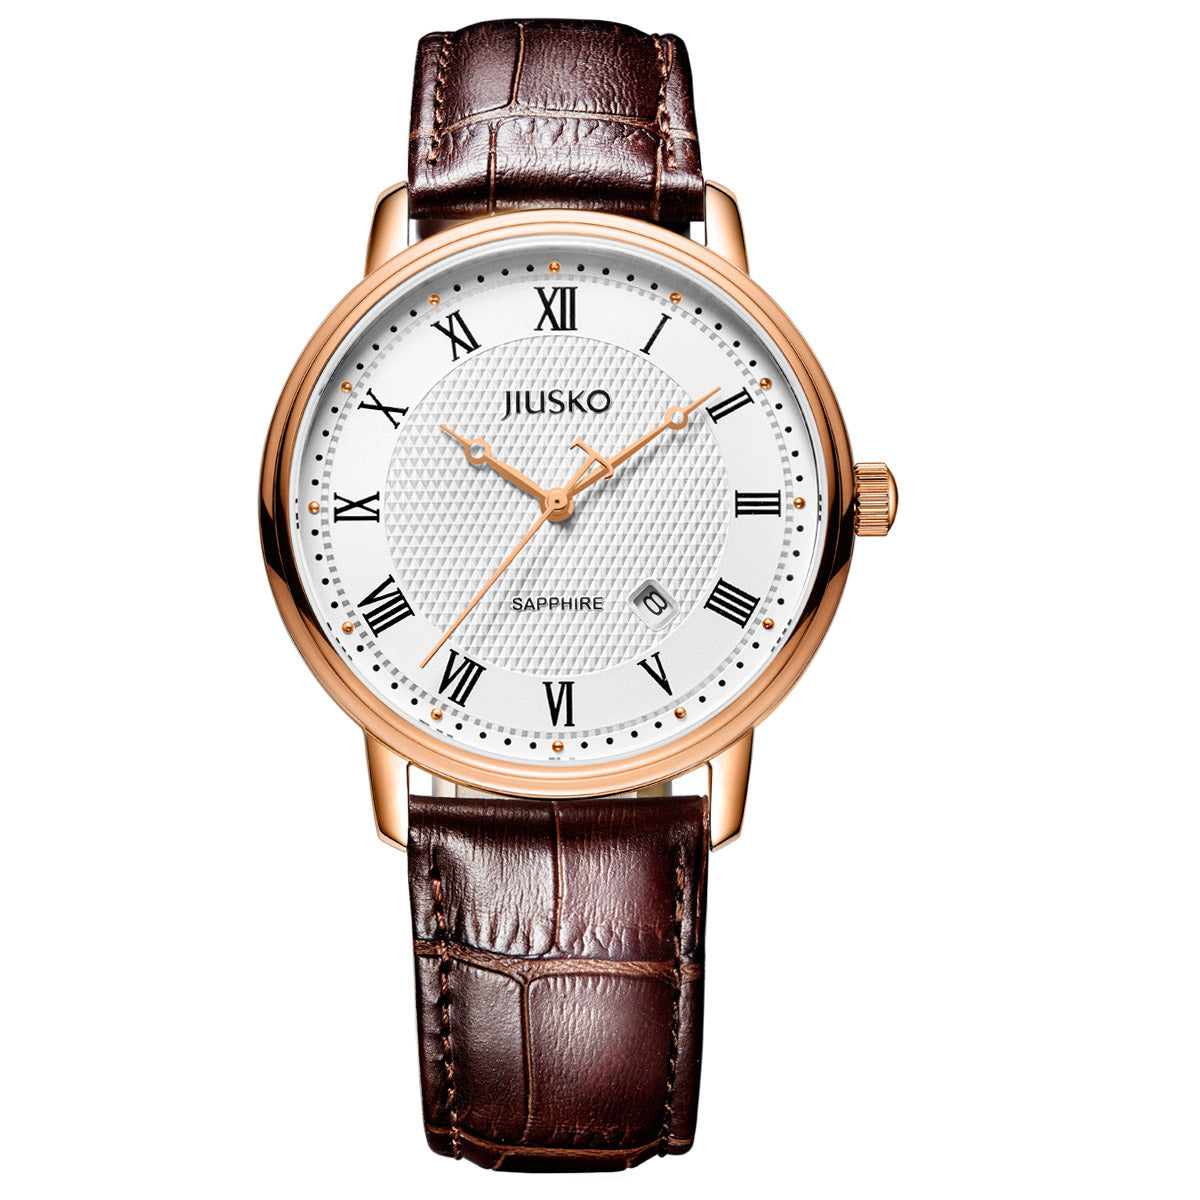 Jiusko Sapphire - His Hers Couples Watches Gift Set - Brown Leather Strap - Rose Gold, 281LMRG0107